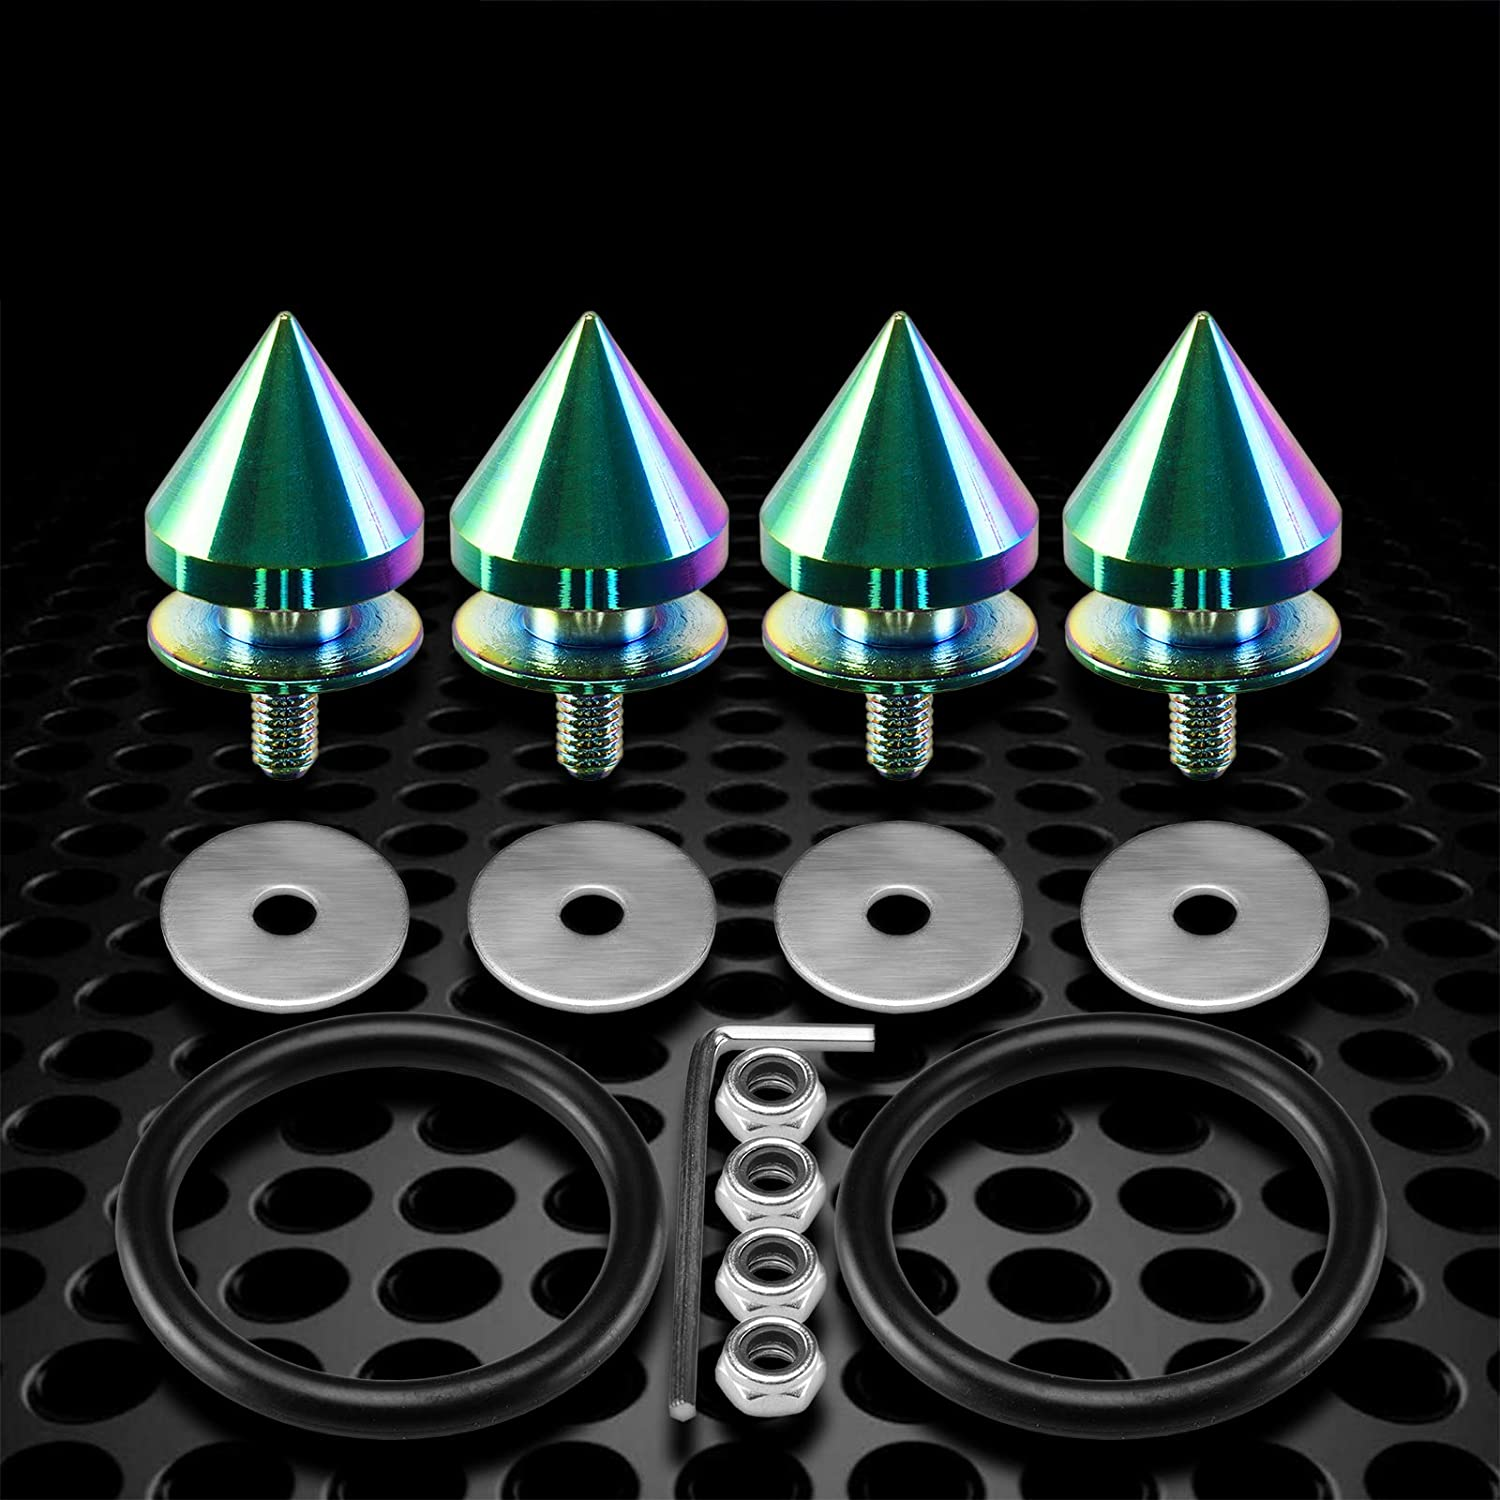 Amazon Com Jdmbestboy Jdm Neo Chrome Spiked Quick Release Fasteners For Car Bumpers Trunk Fender Hatch Lids Kit From Automotive